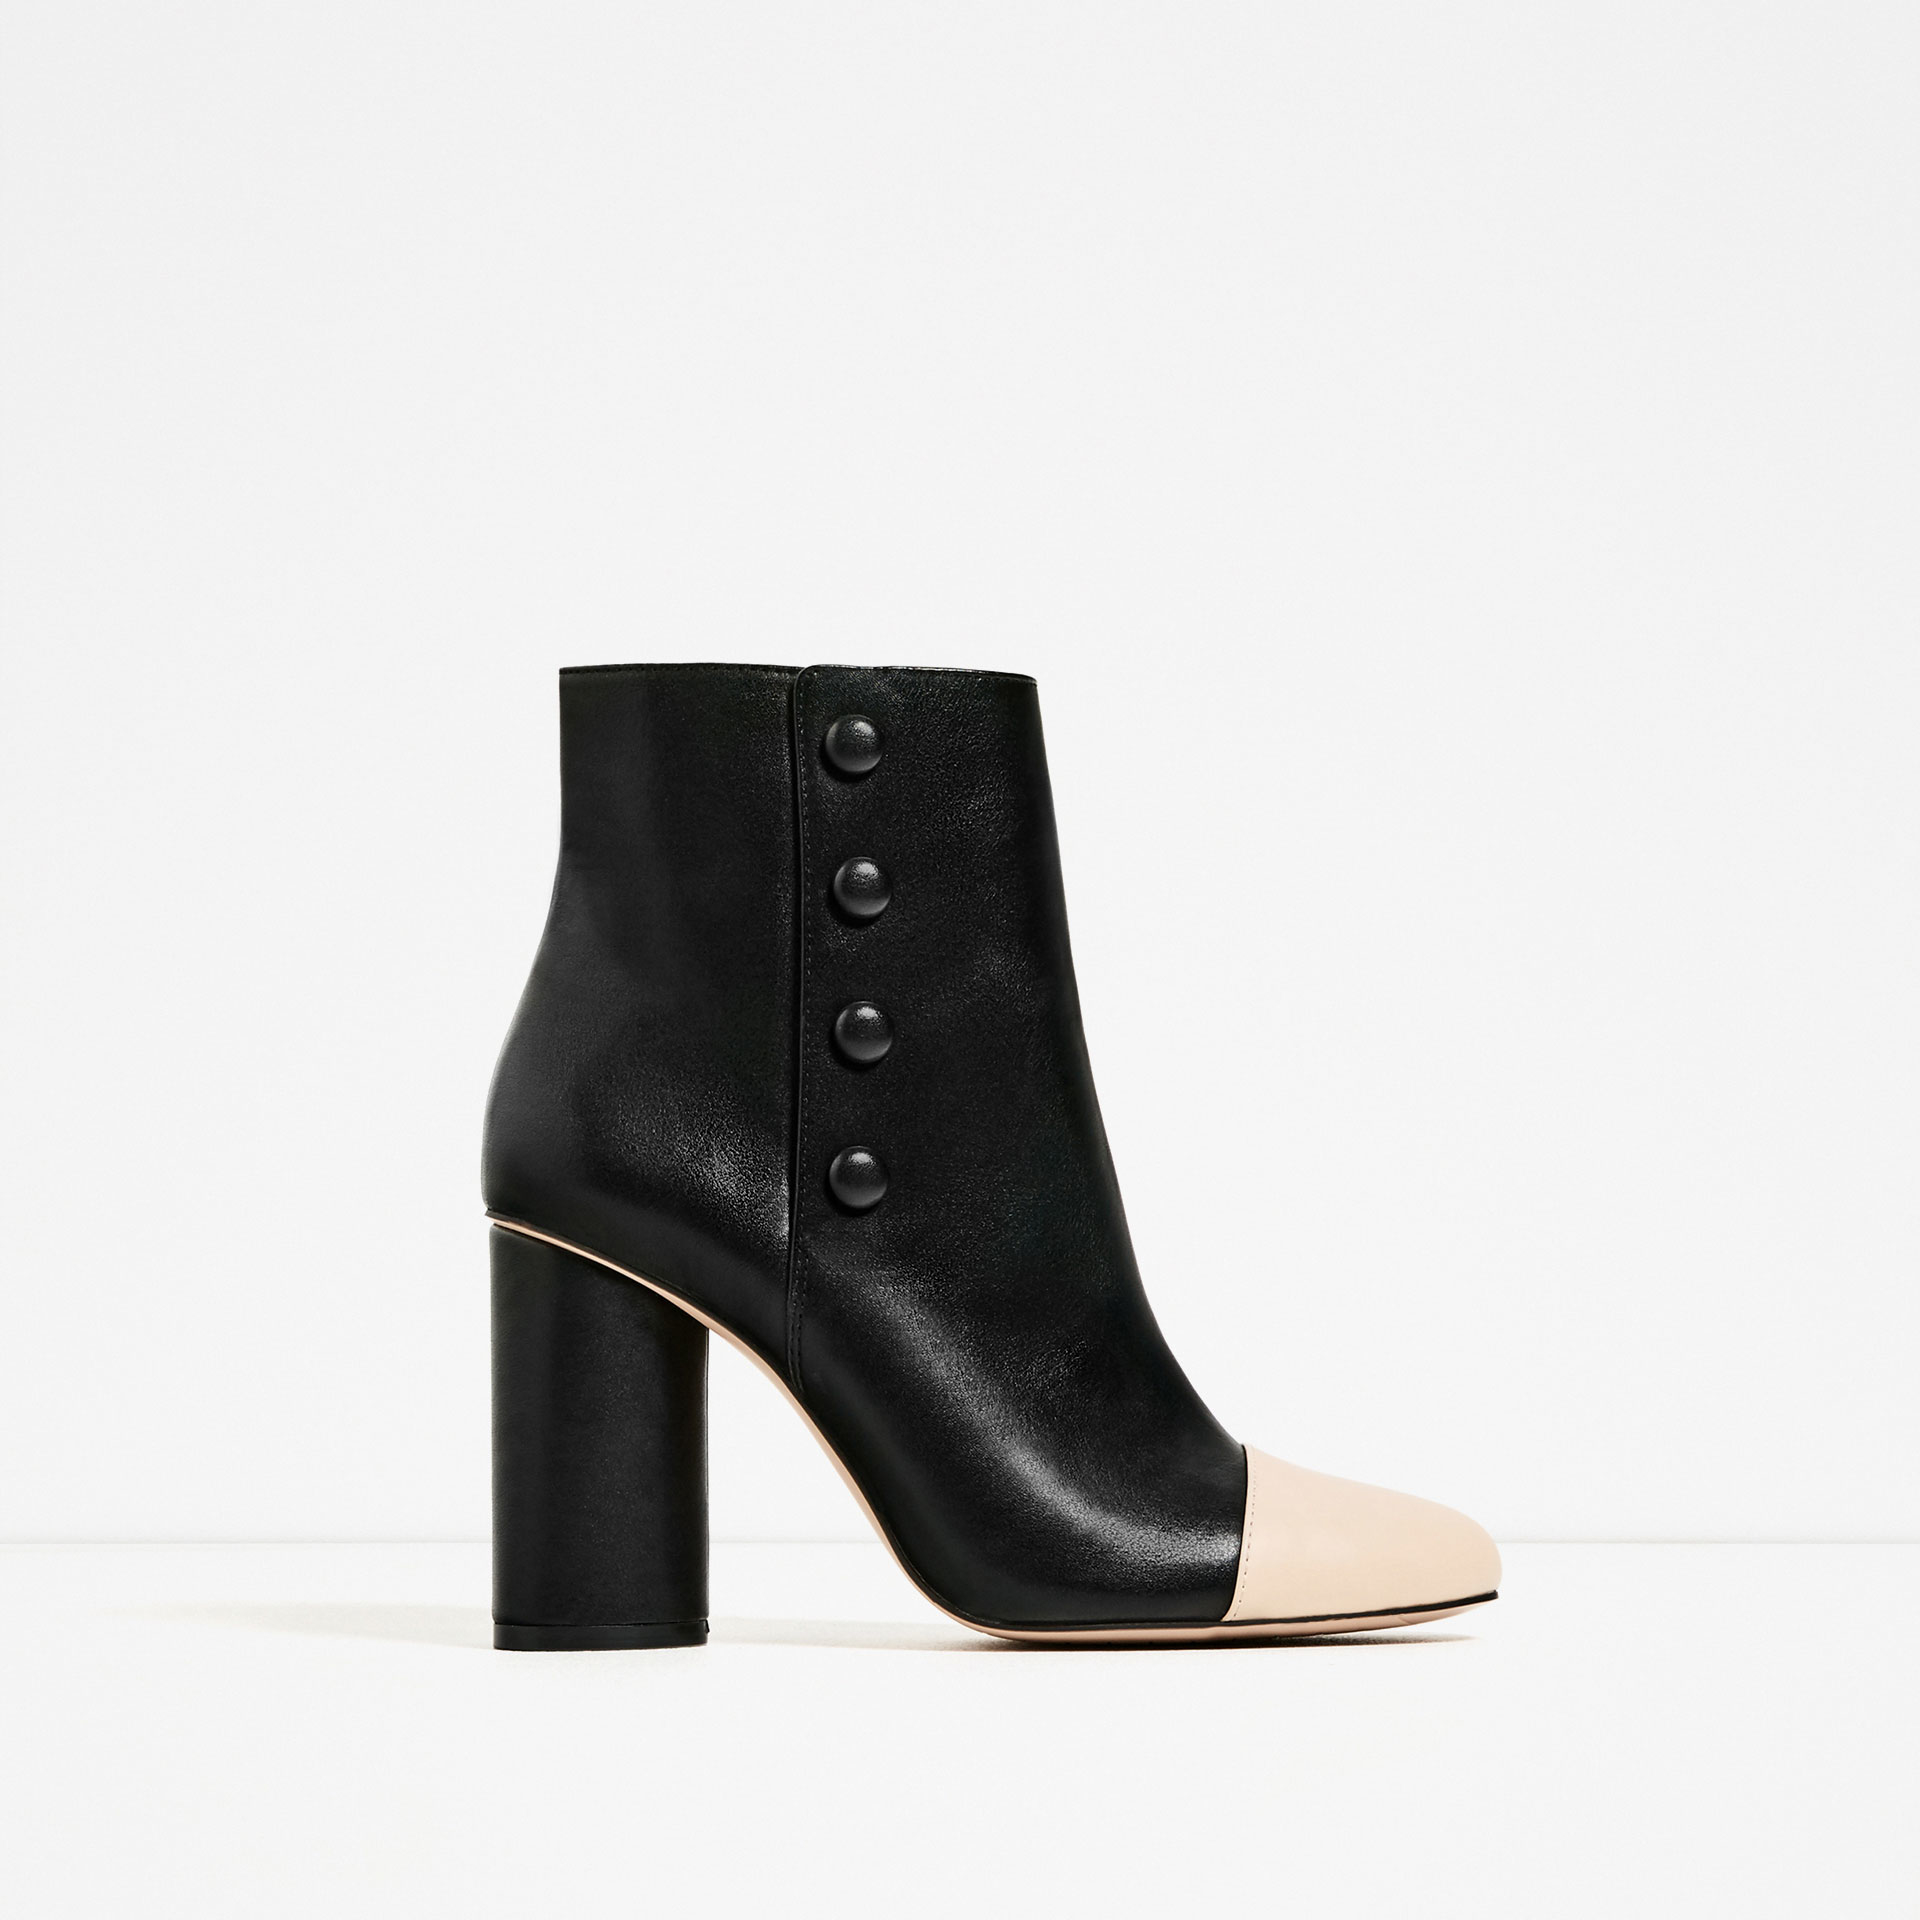 Creative Womens Shoes Dropshippers